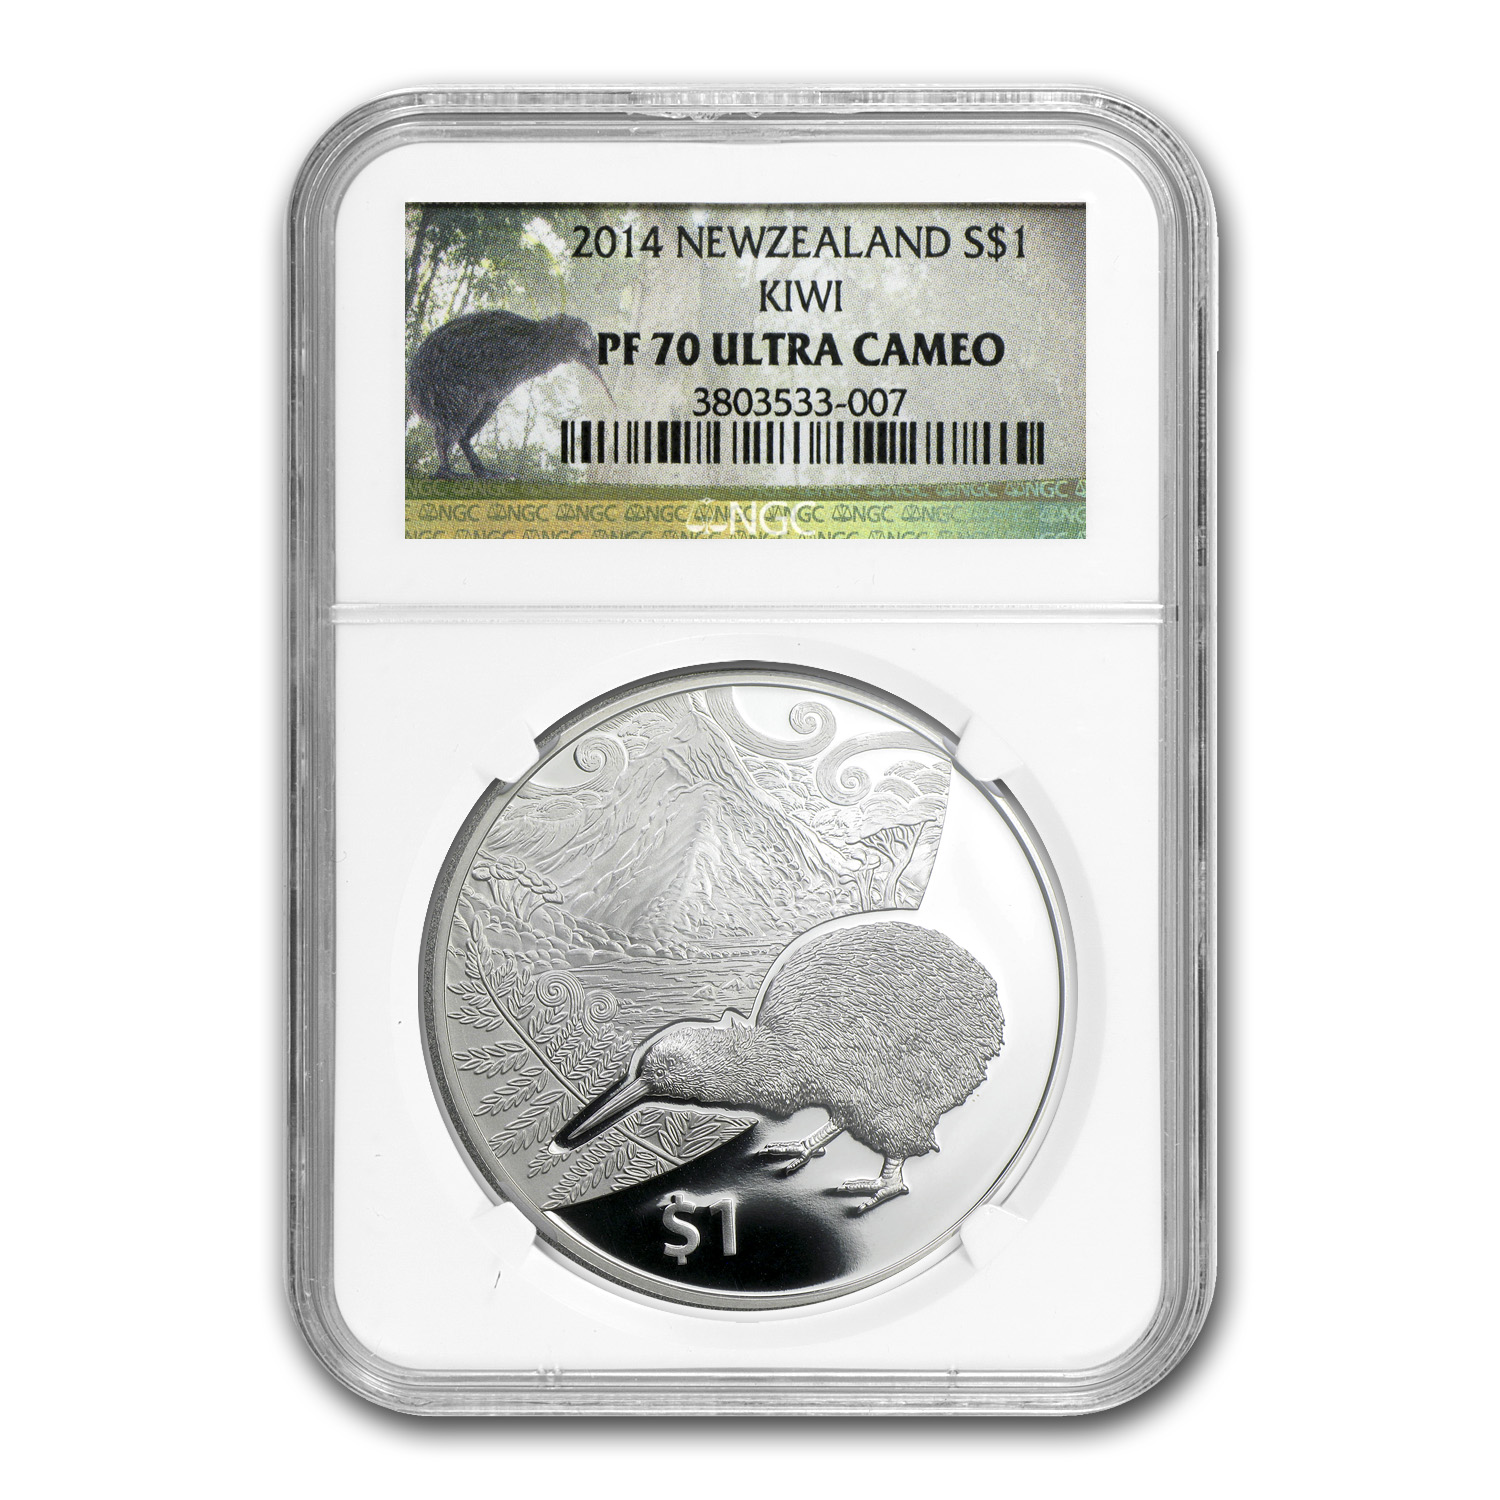 2014 New Zealand 1 oz Silver Treasures $1 Kiwi PF-70 NGC